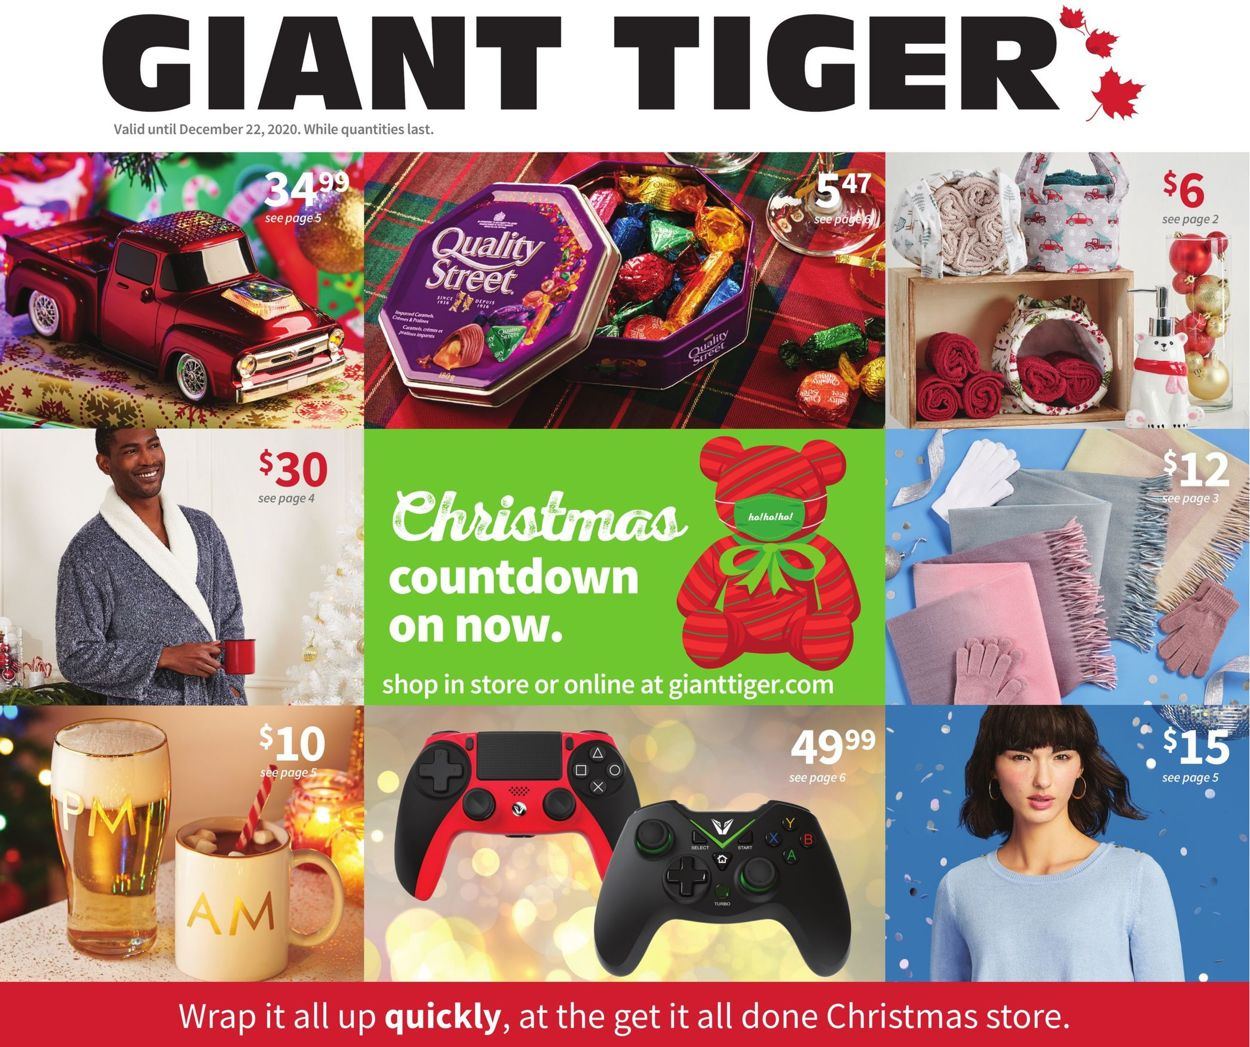 Giant Tiger - Holiday 2020 Flyer - 12/16-12/22/2020